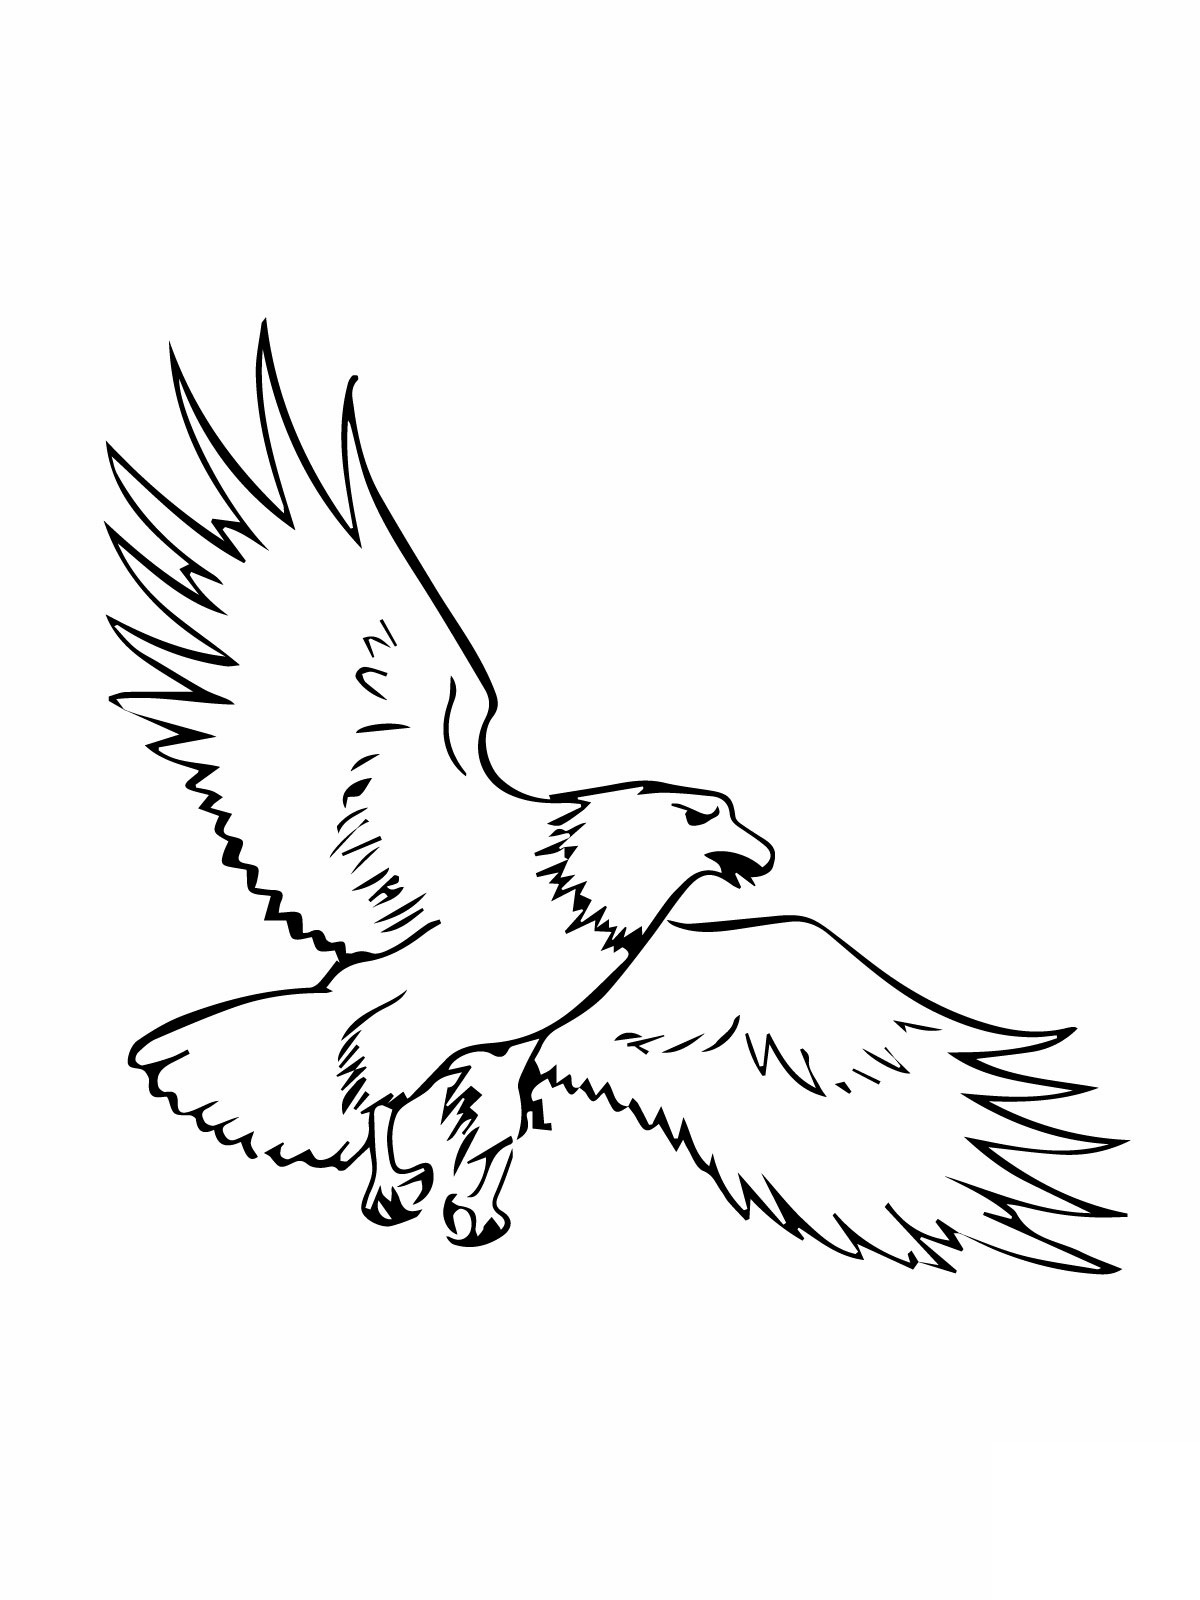 bald eagle coloring pictures bald eagle coloring pages download and print for free pictures coloring bald eagle